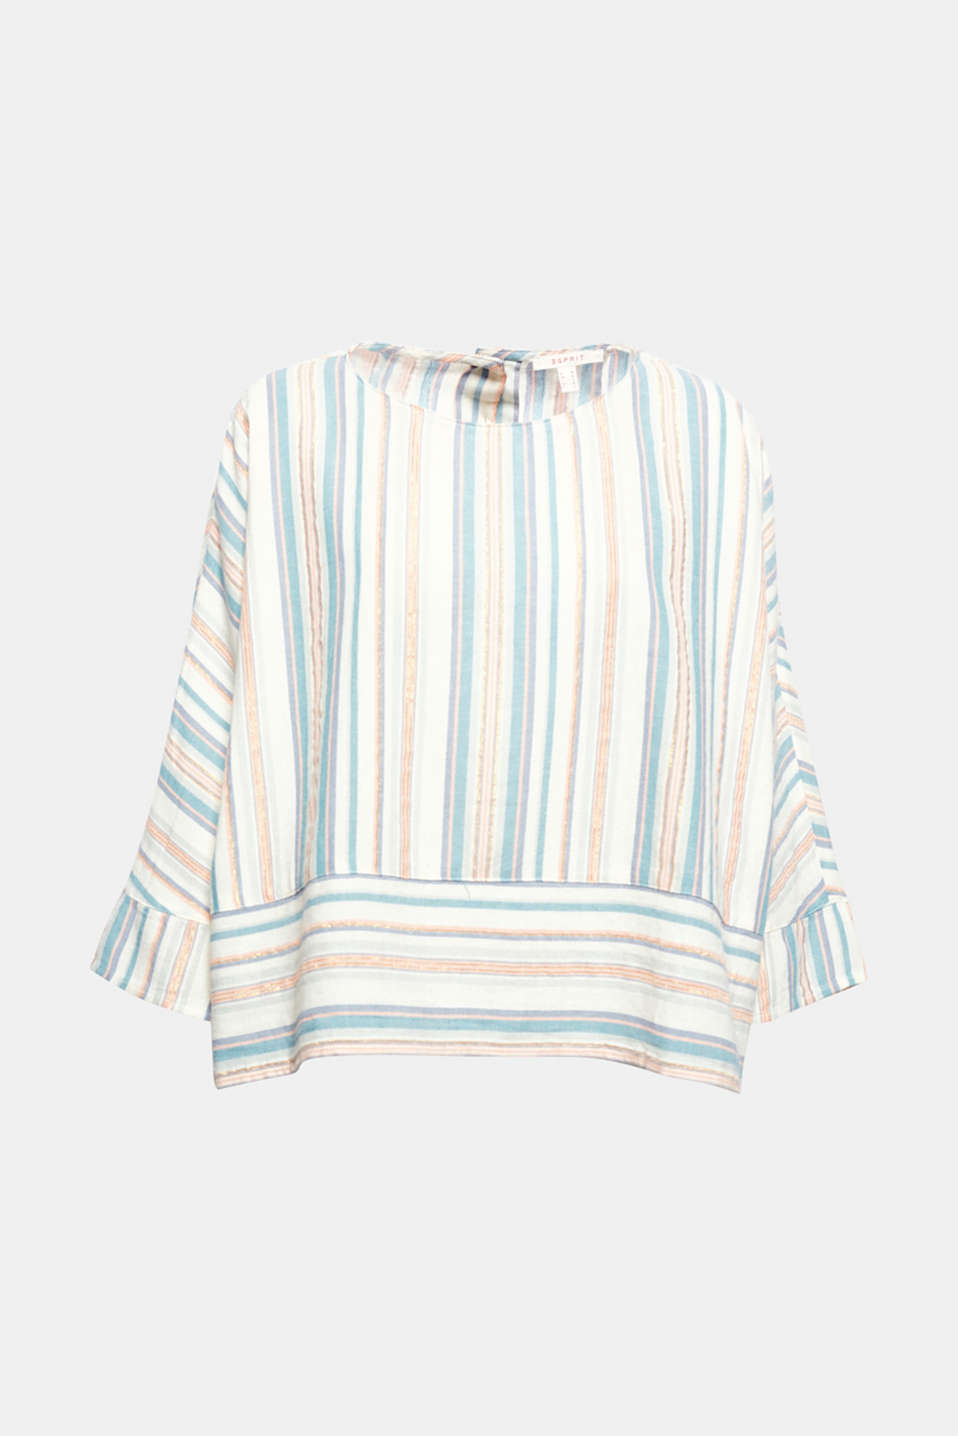 Mixed stripes with glittering lurex give this extra wide cotton blouse its individual charm!